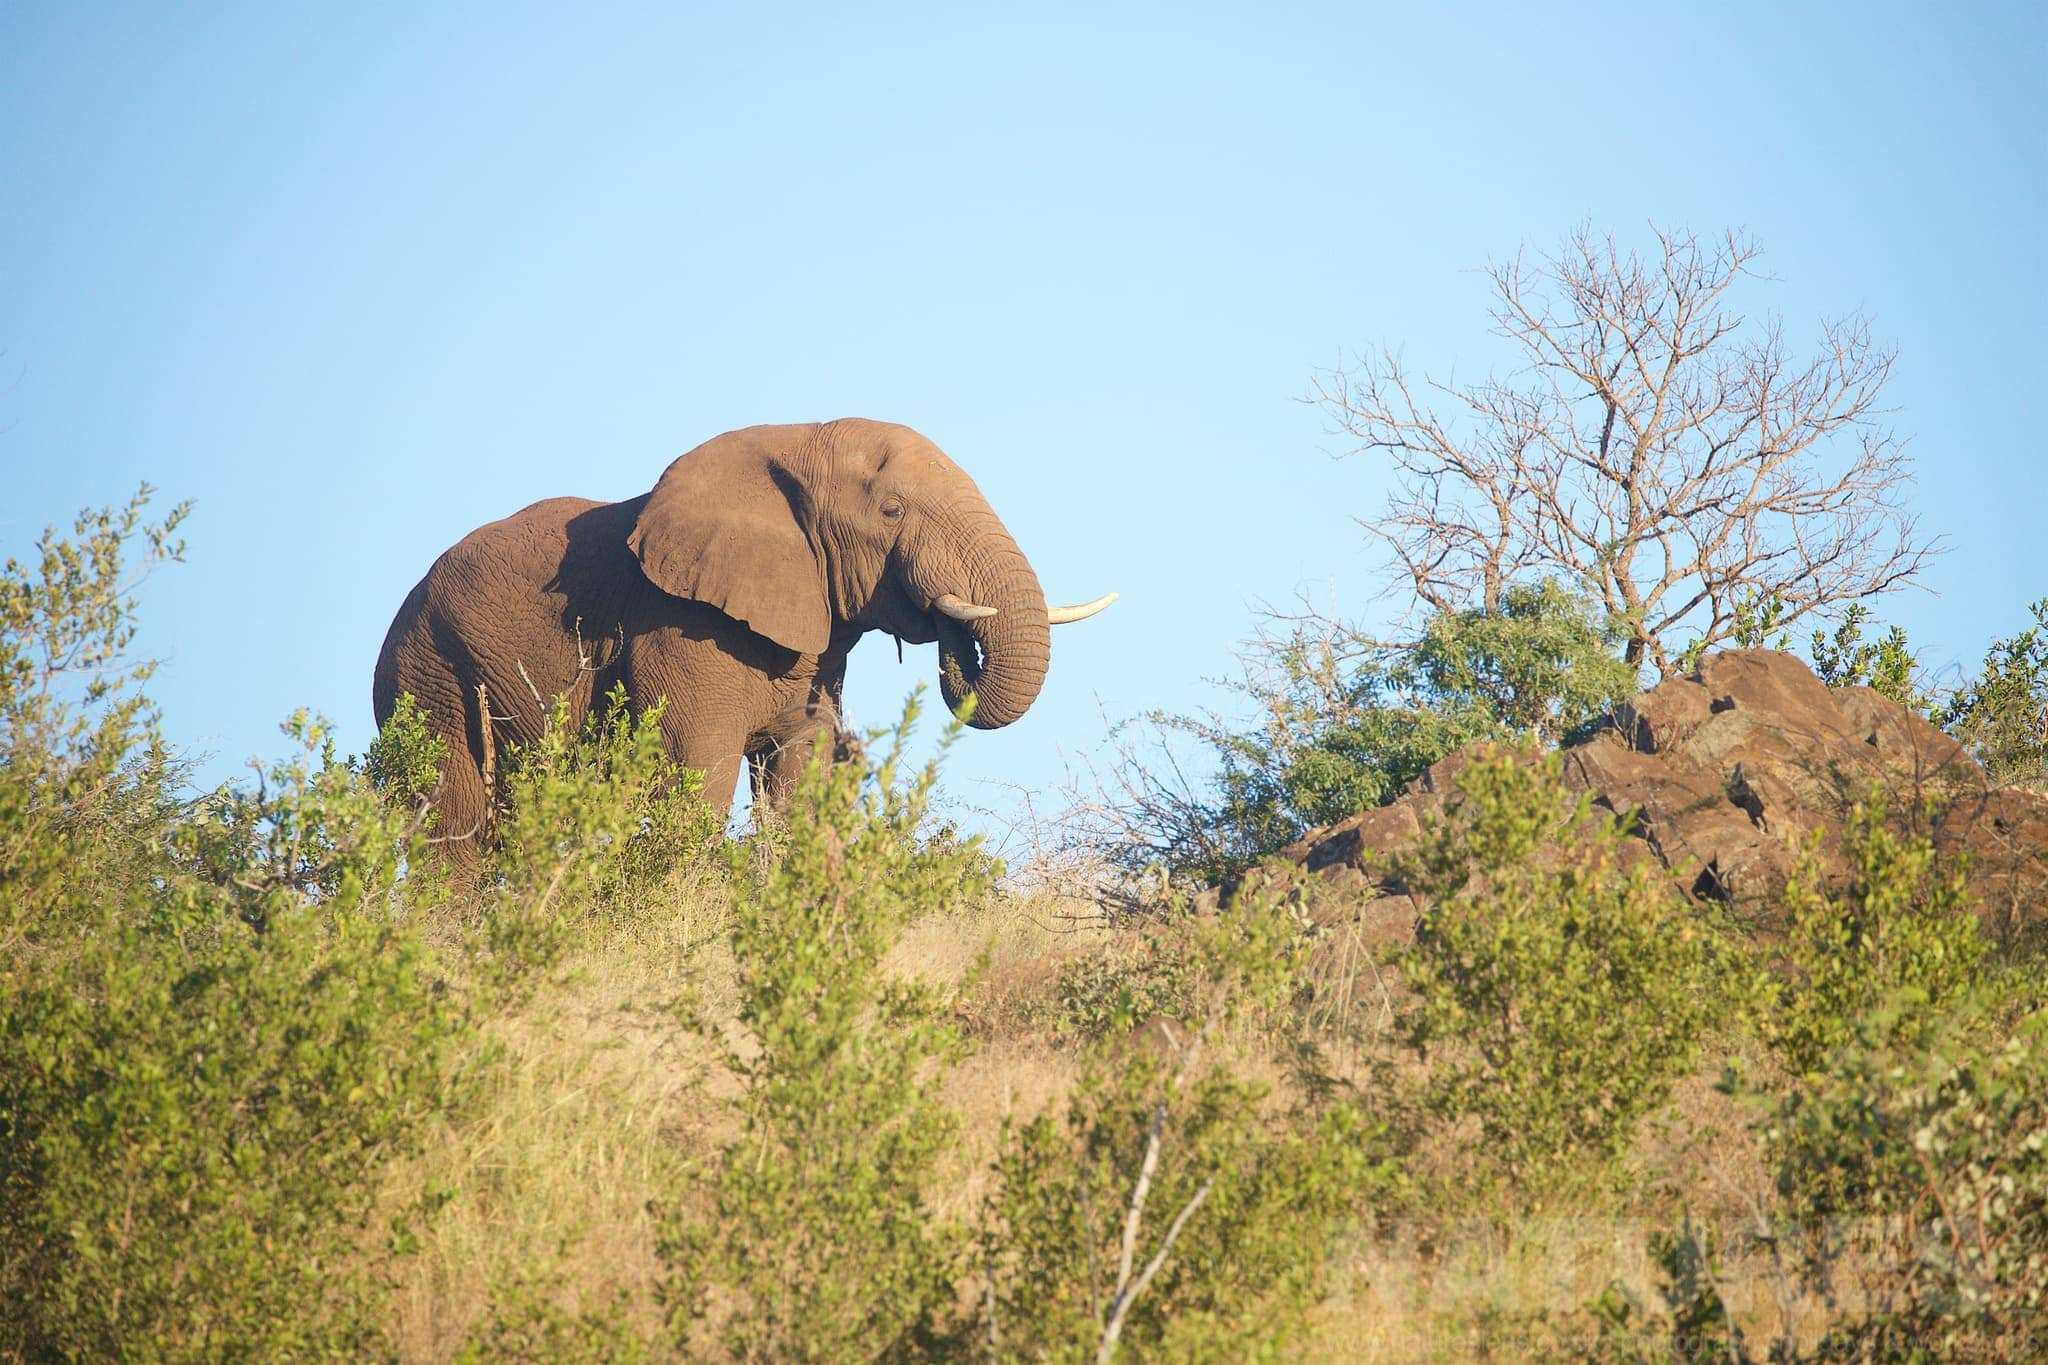 Elephant Eating As He Walks Along The Ridge Captured During The Natureslens African Wildlife Zimanga Photography Holiday